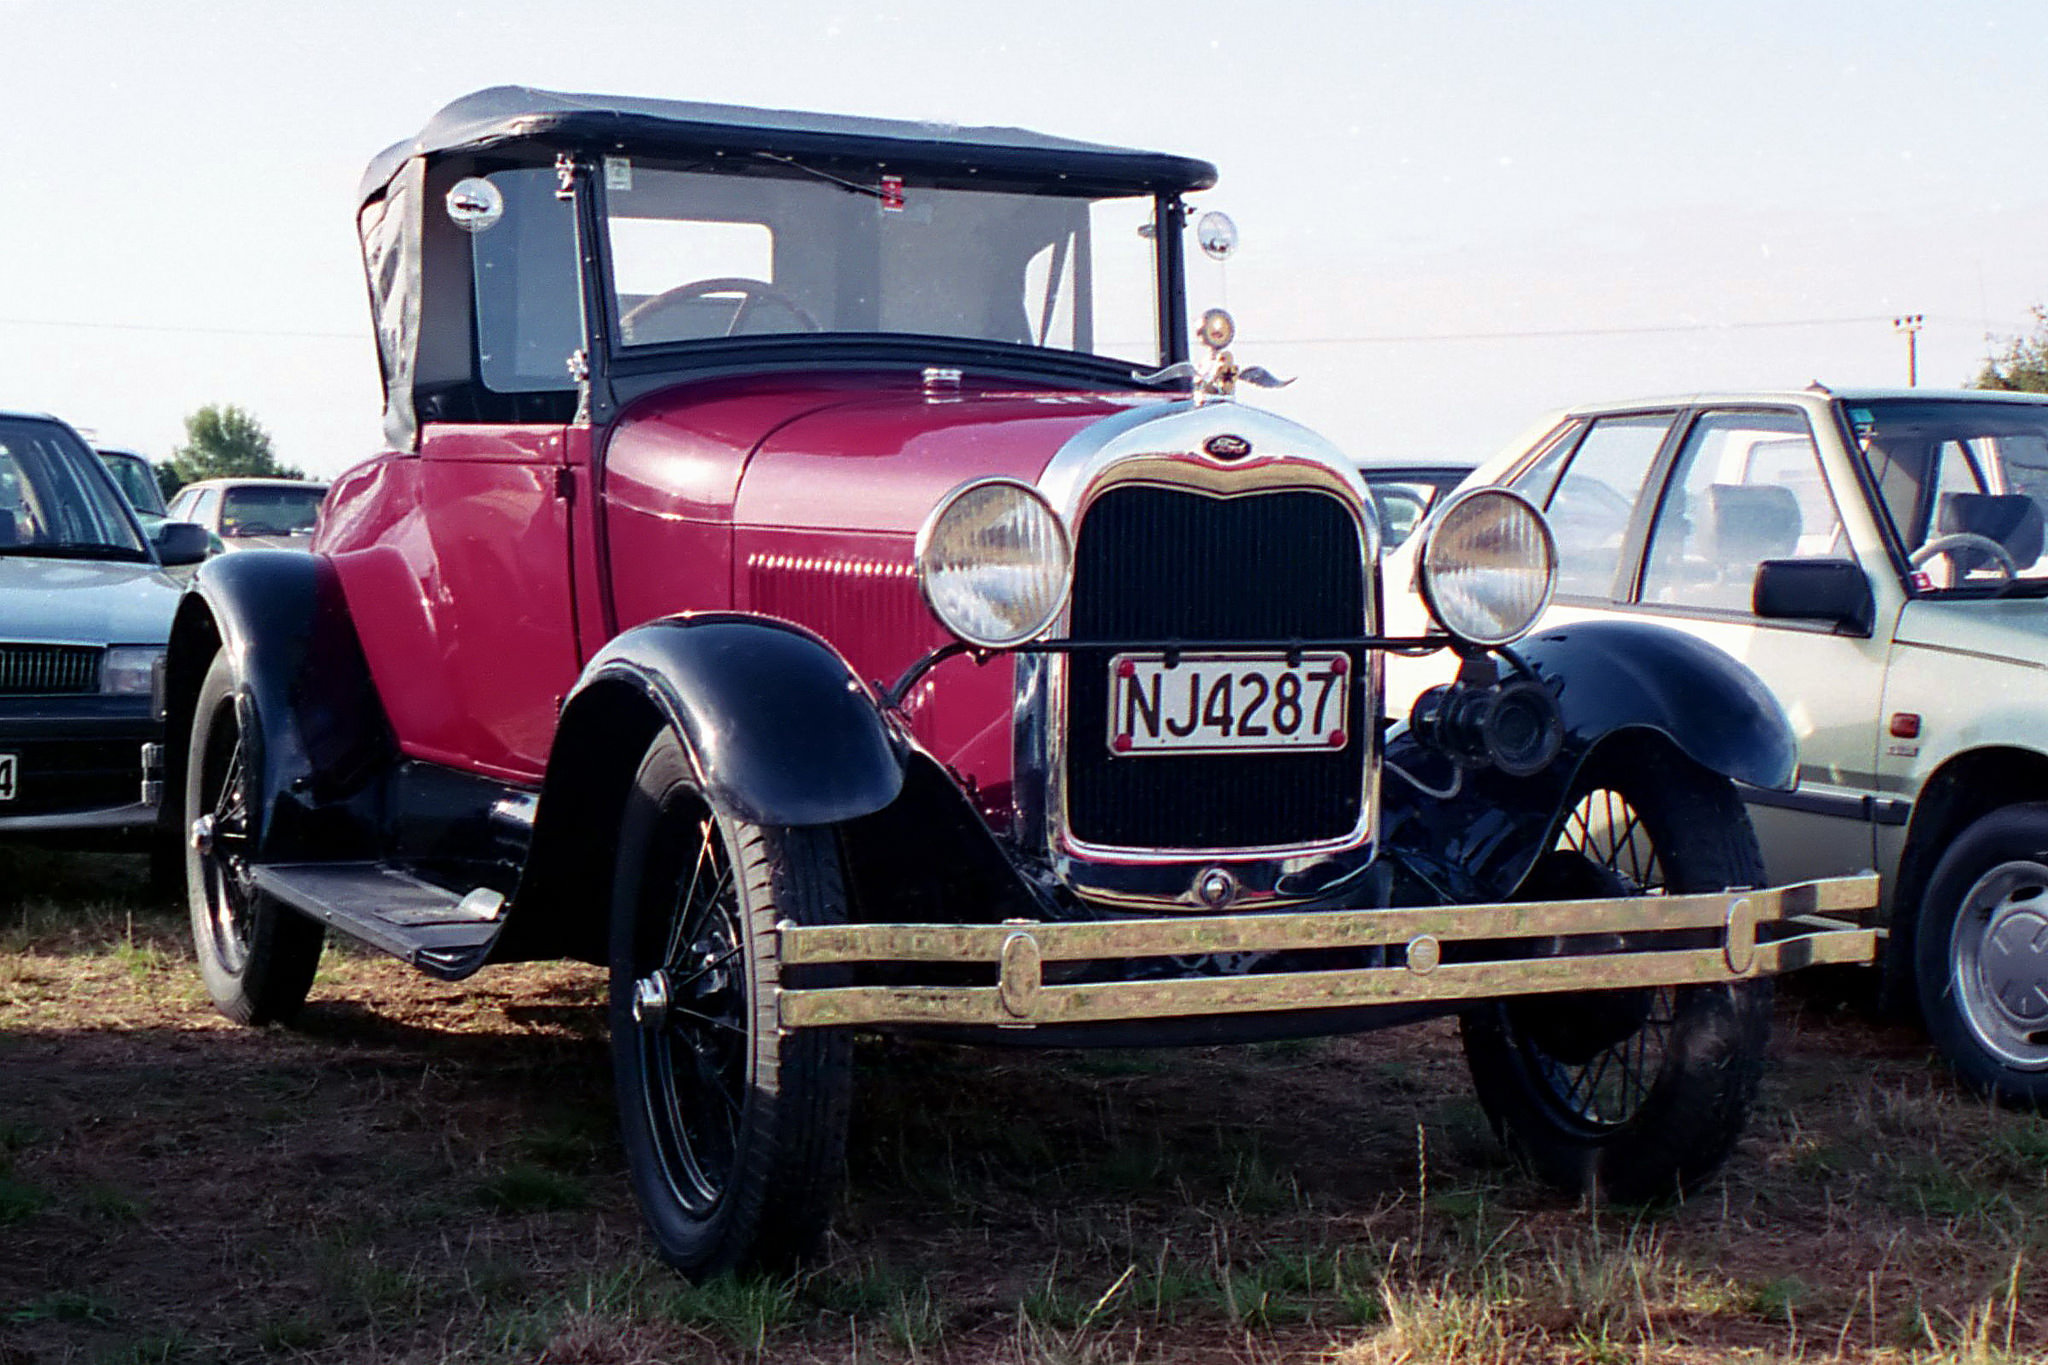 The Most Iconic Car of the 1920s: Ford Model A